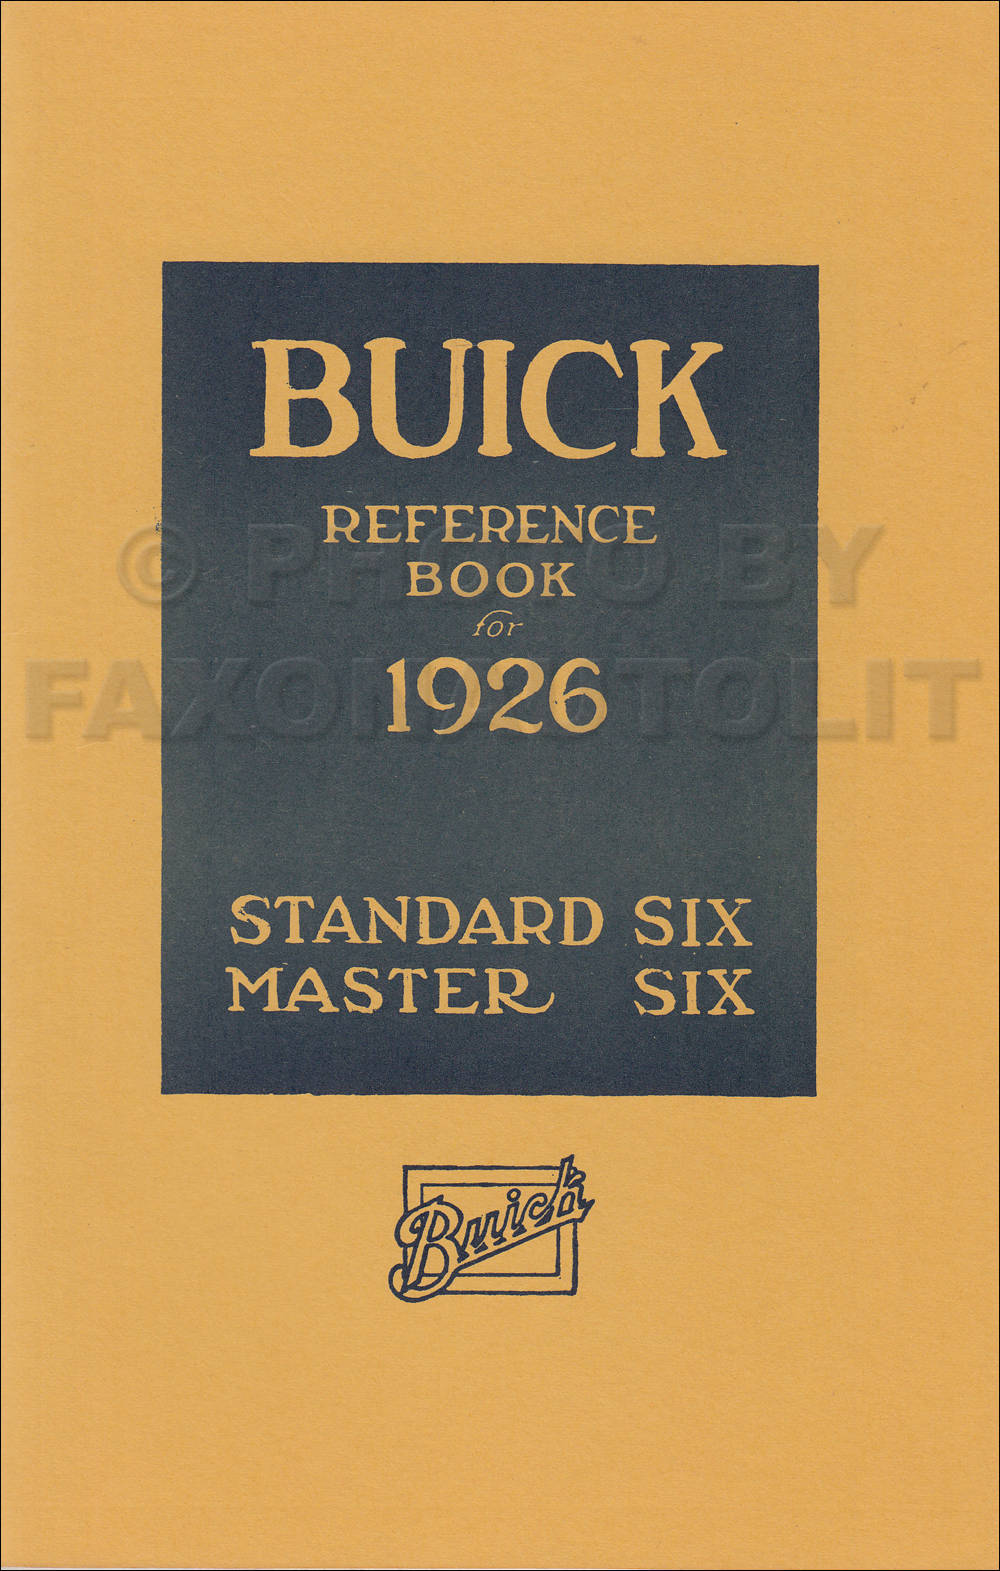 1926 Buick Owner's Manual Reprint